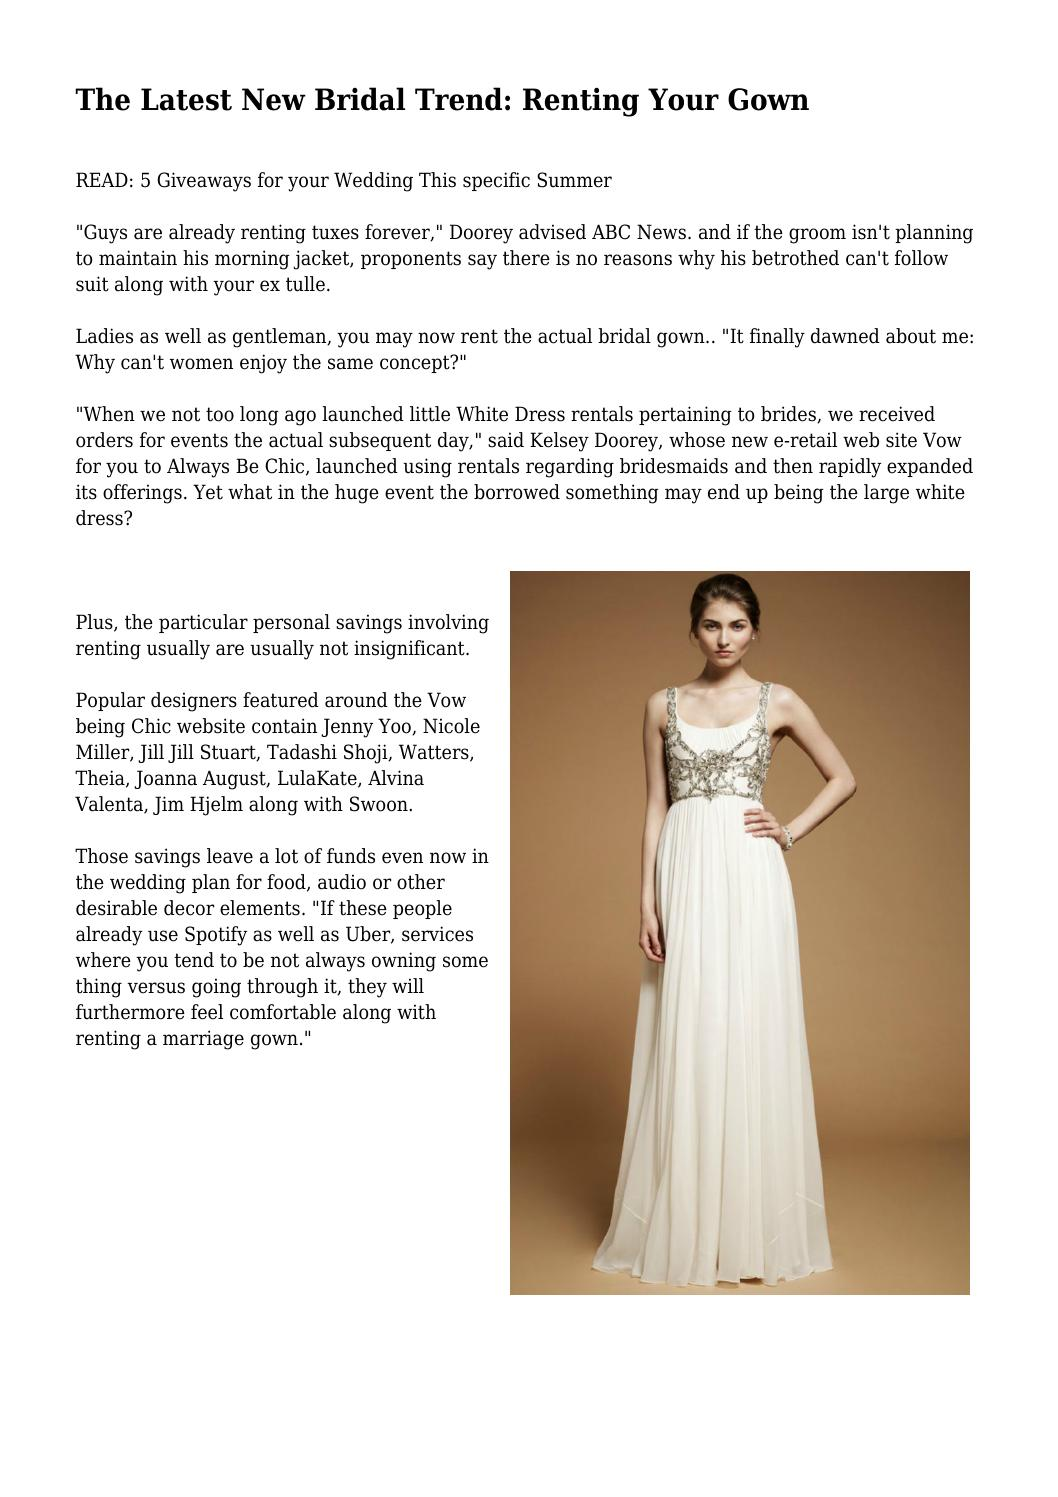 The Latest New Bridal Trend: Renting Your Gown by tearfulsaga9446 ...